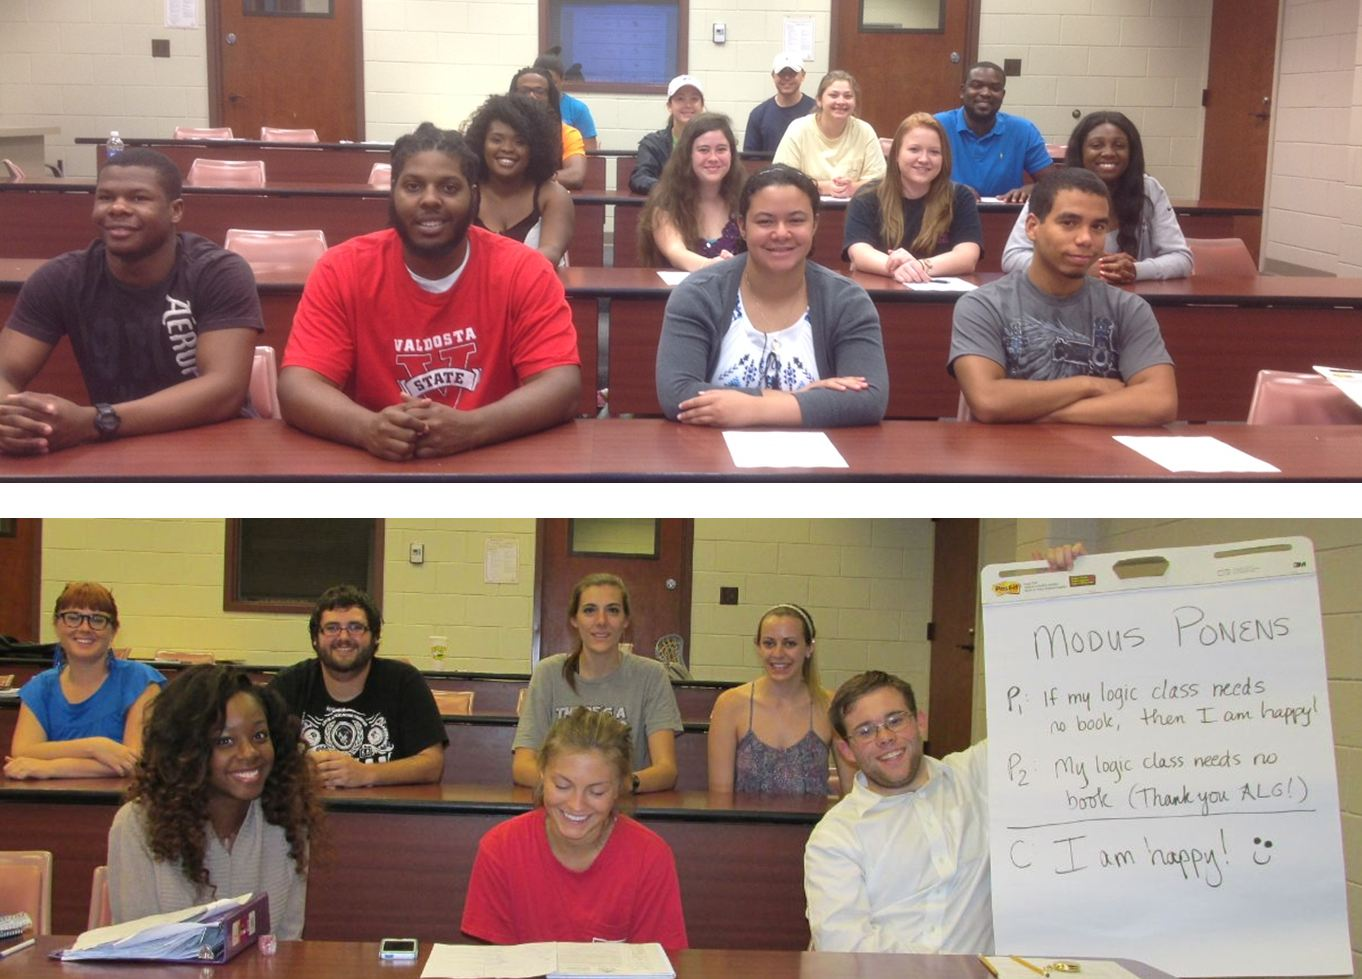 Two images of the students from the sections of PHIL 2020 who were piloting the Affordable Learning Georgia program.